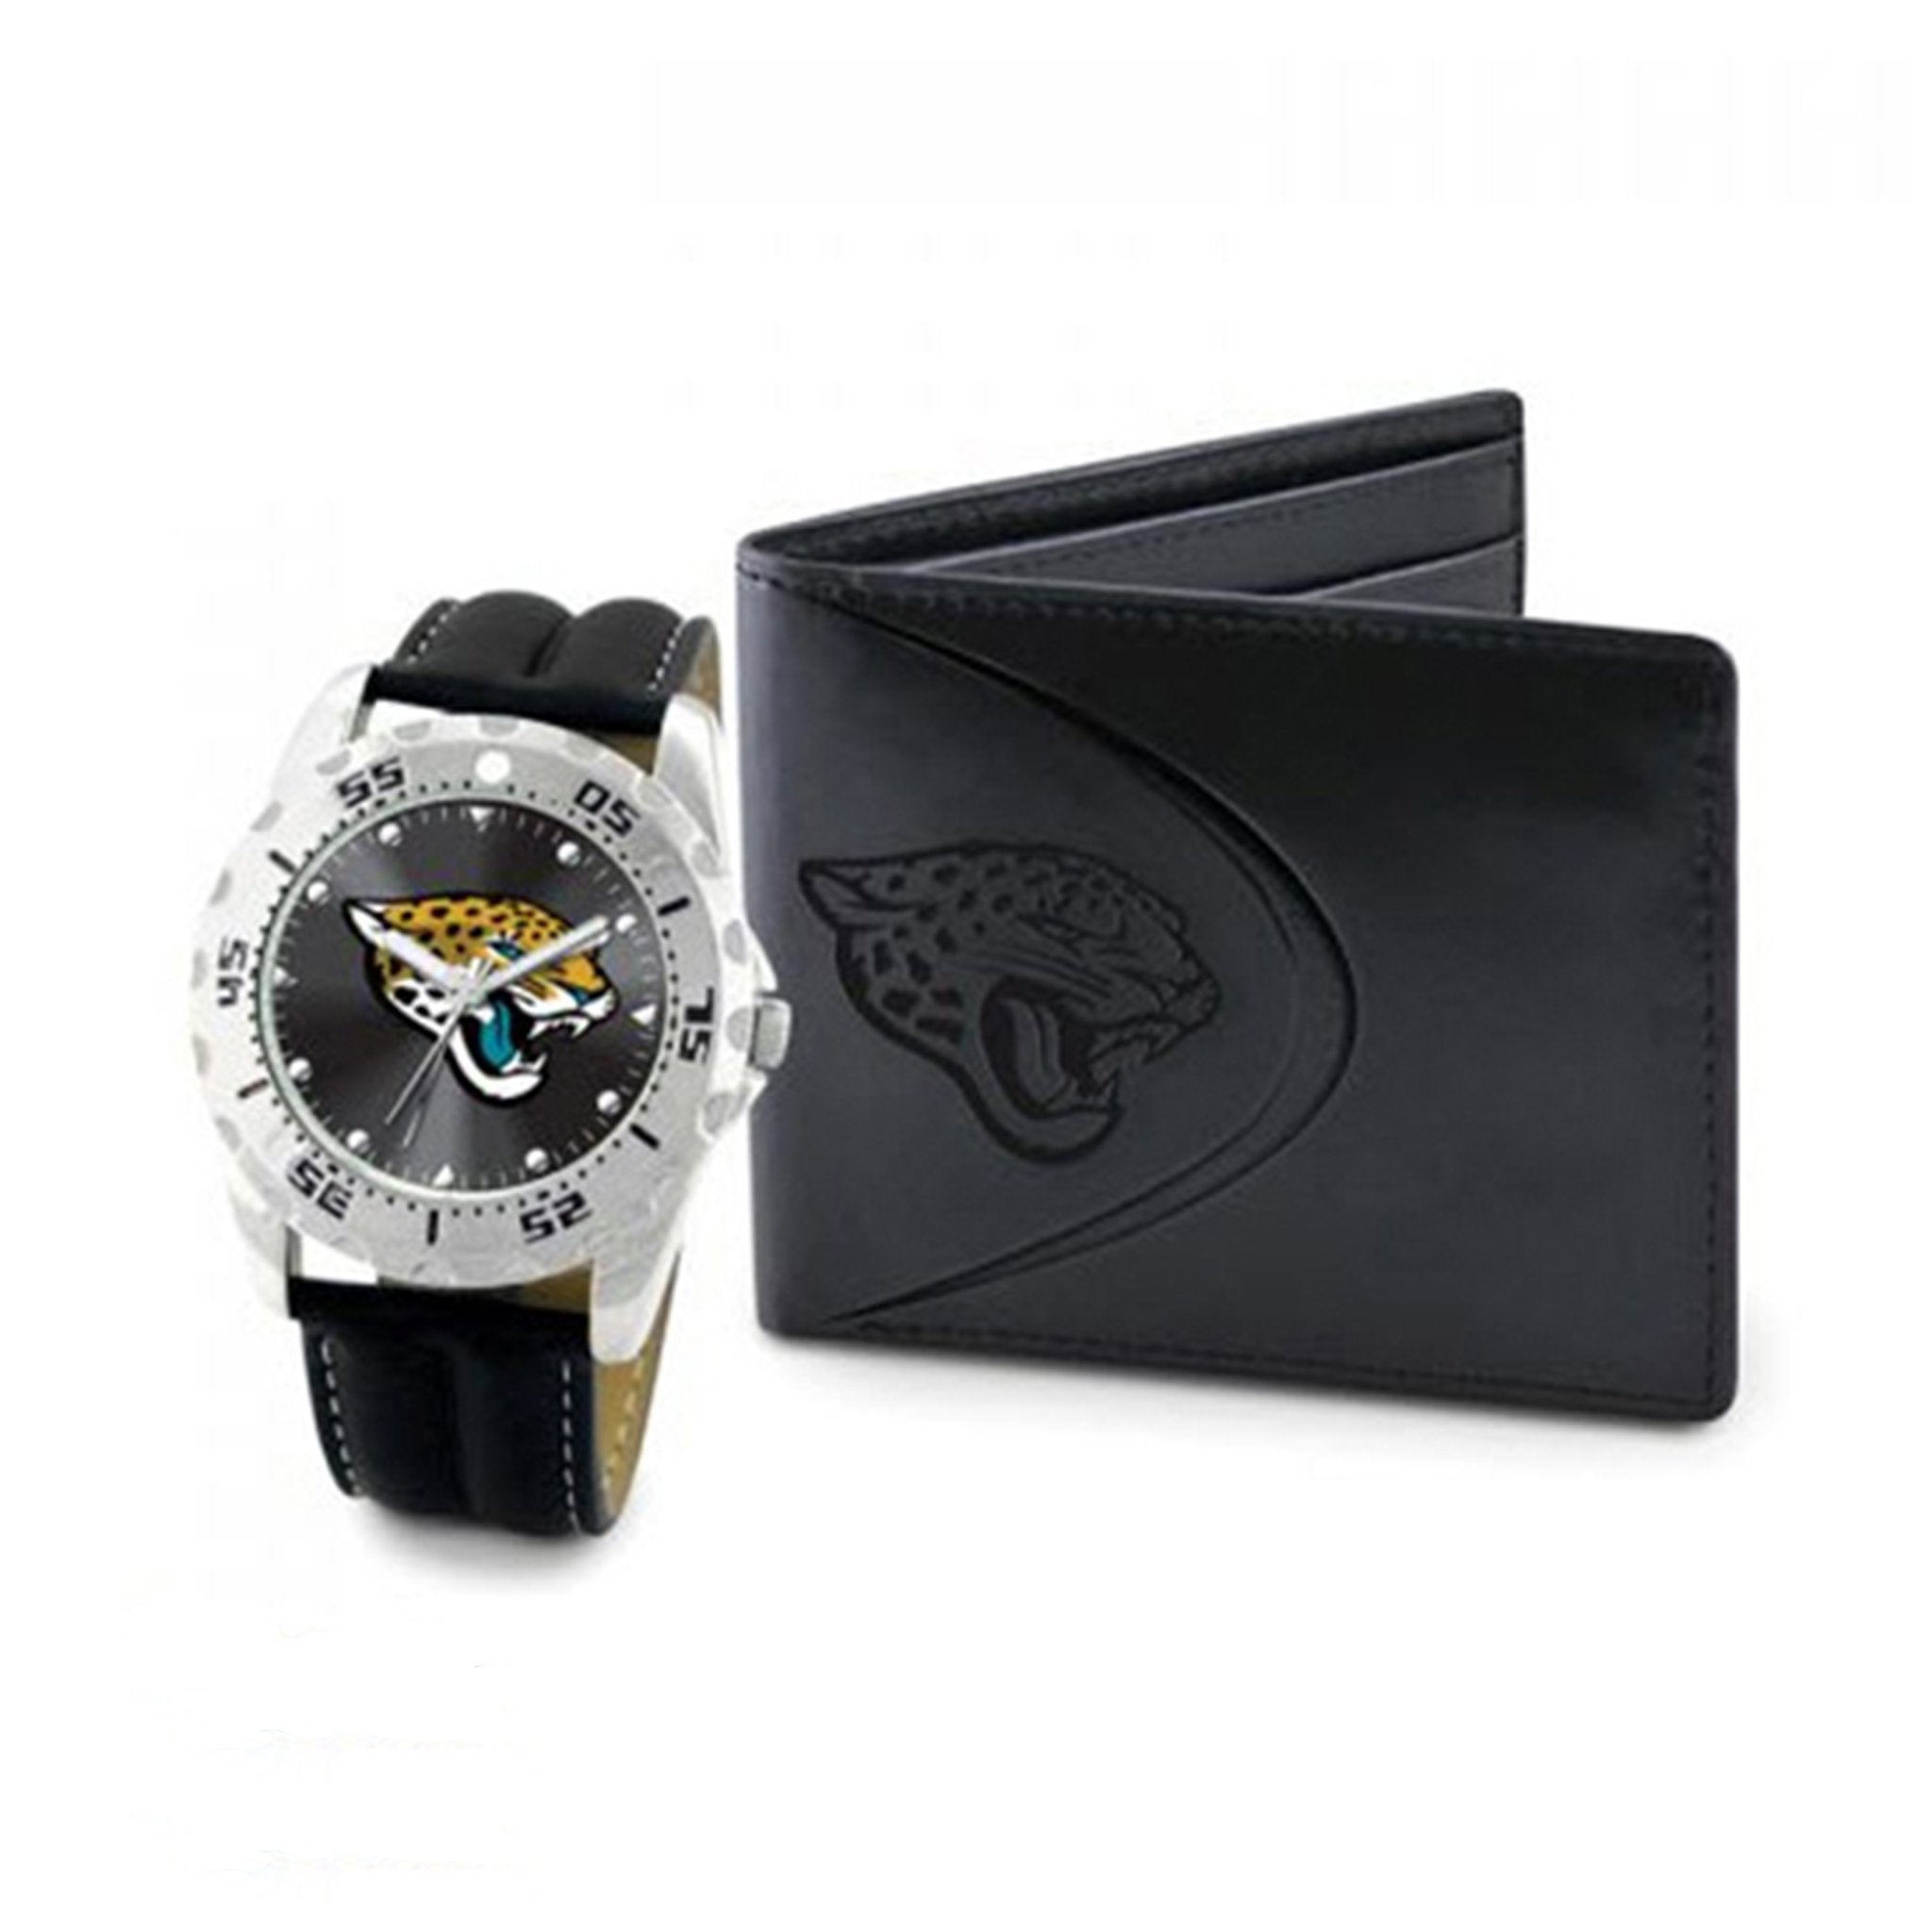 NFL Jacksonville Jaguars Men's Watch and Wallet Set